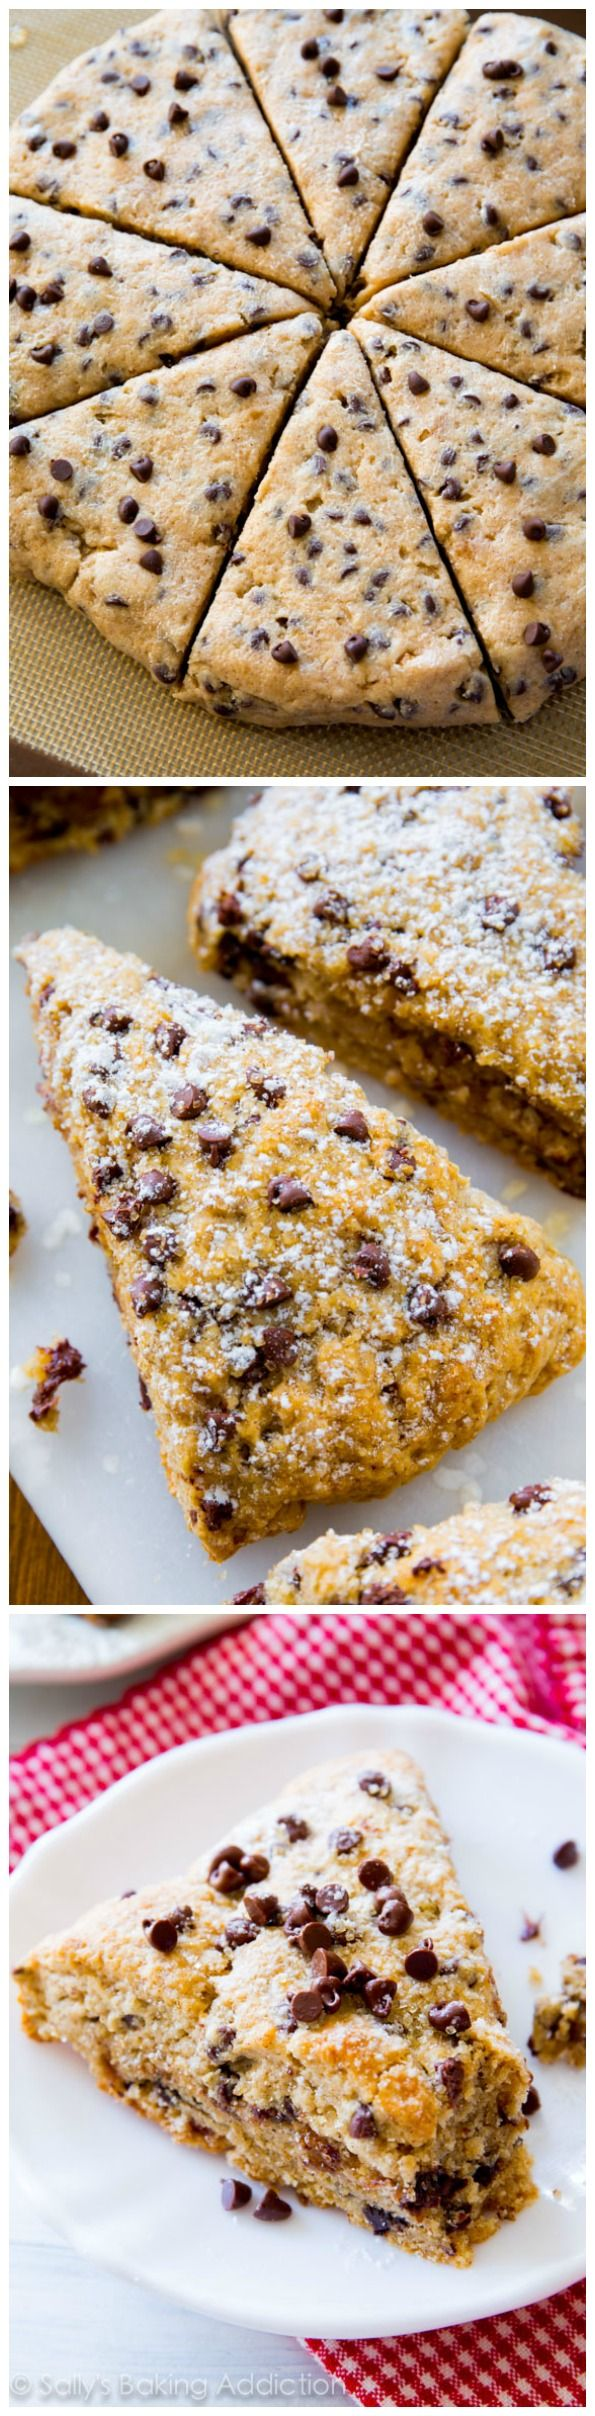 Melt-in-your-mouth chocolate chip scones. Tender and moist inside, these buttery scones are the BEST!